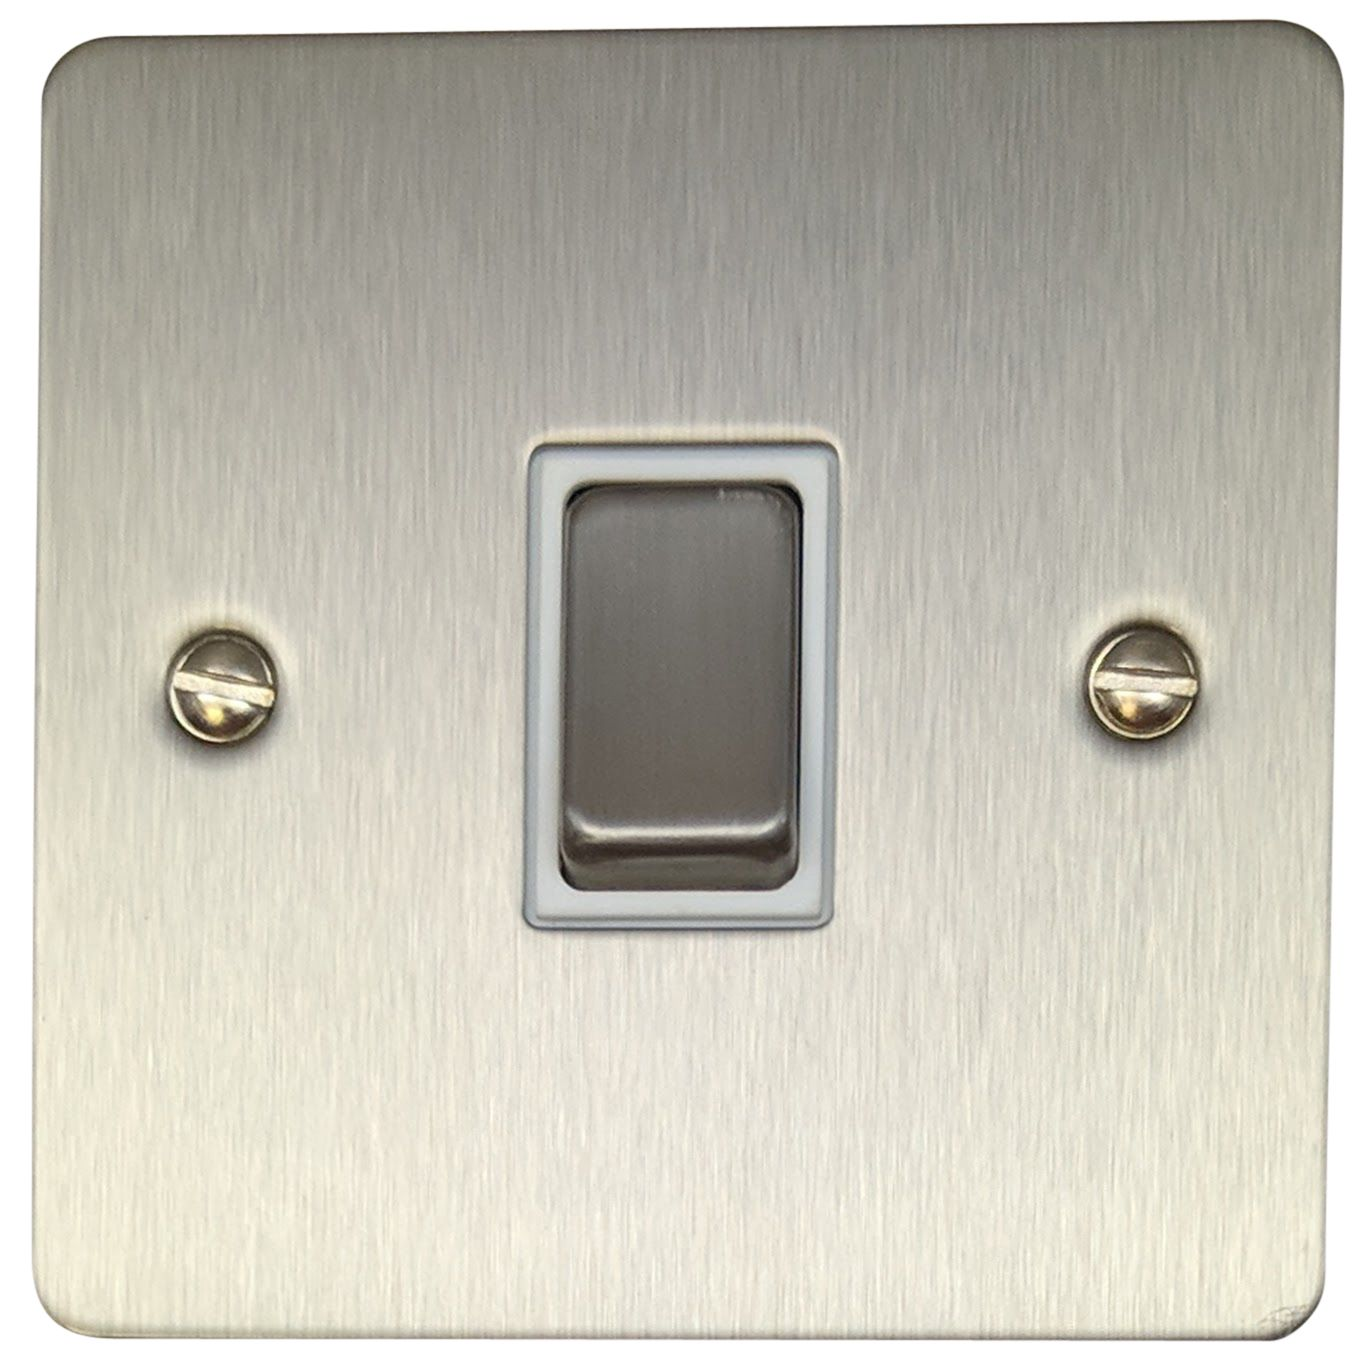 G/&H FSS310 Flat Plate Brushed Steel 2 Gang Double 13A Switched Plug Socket